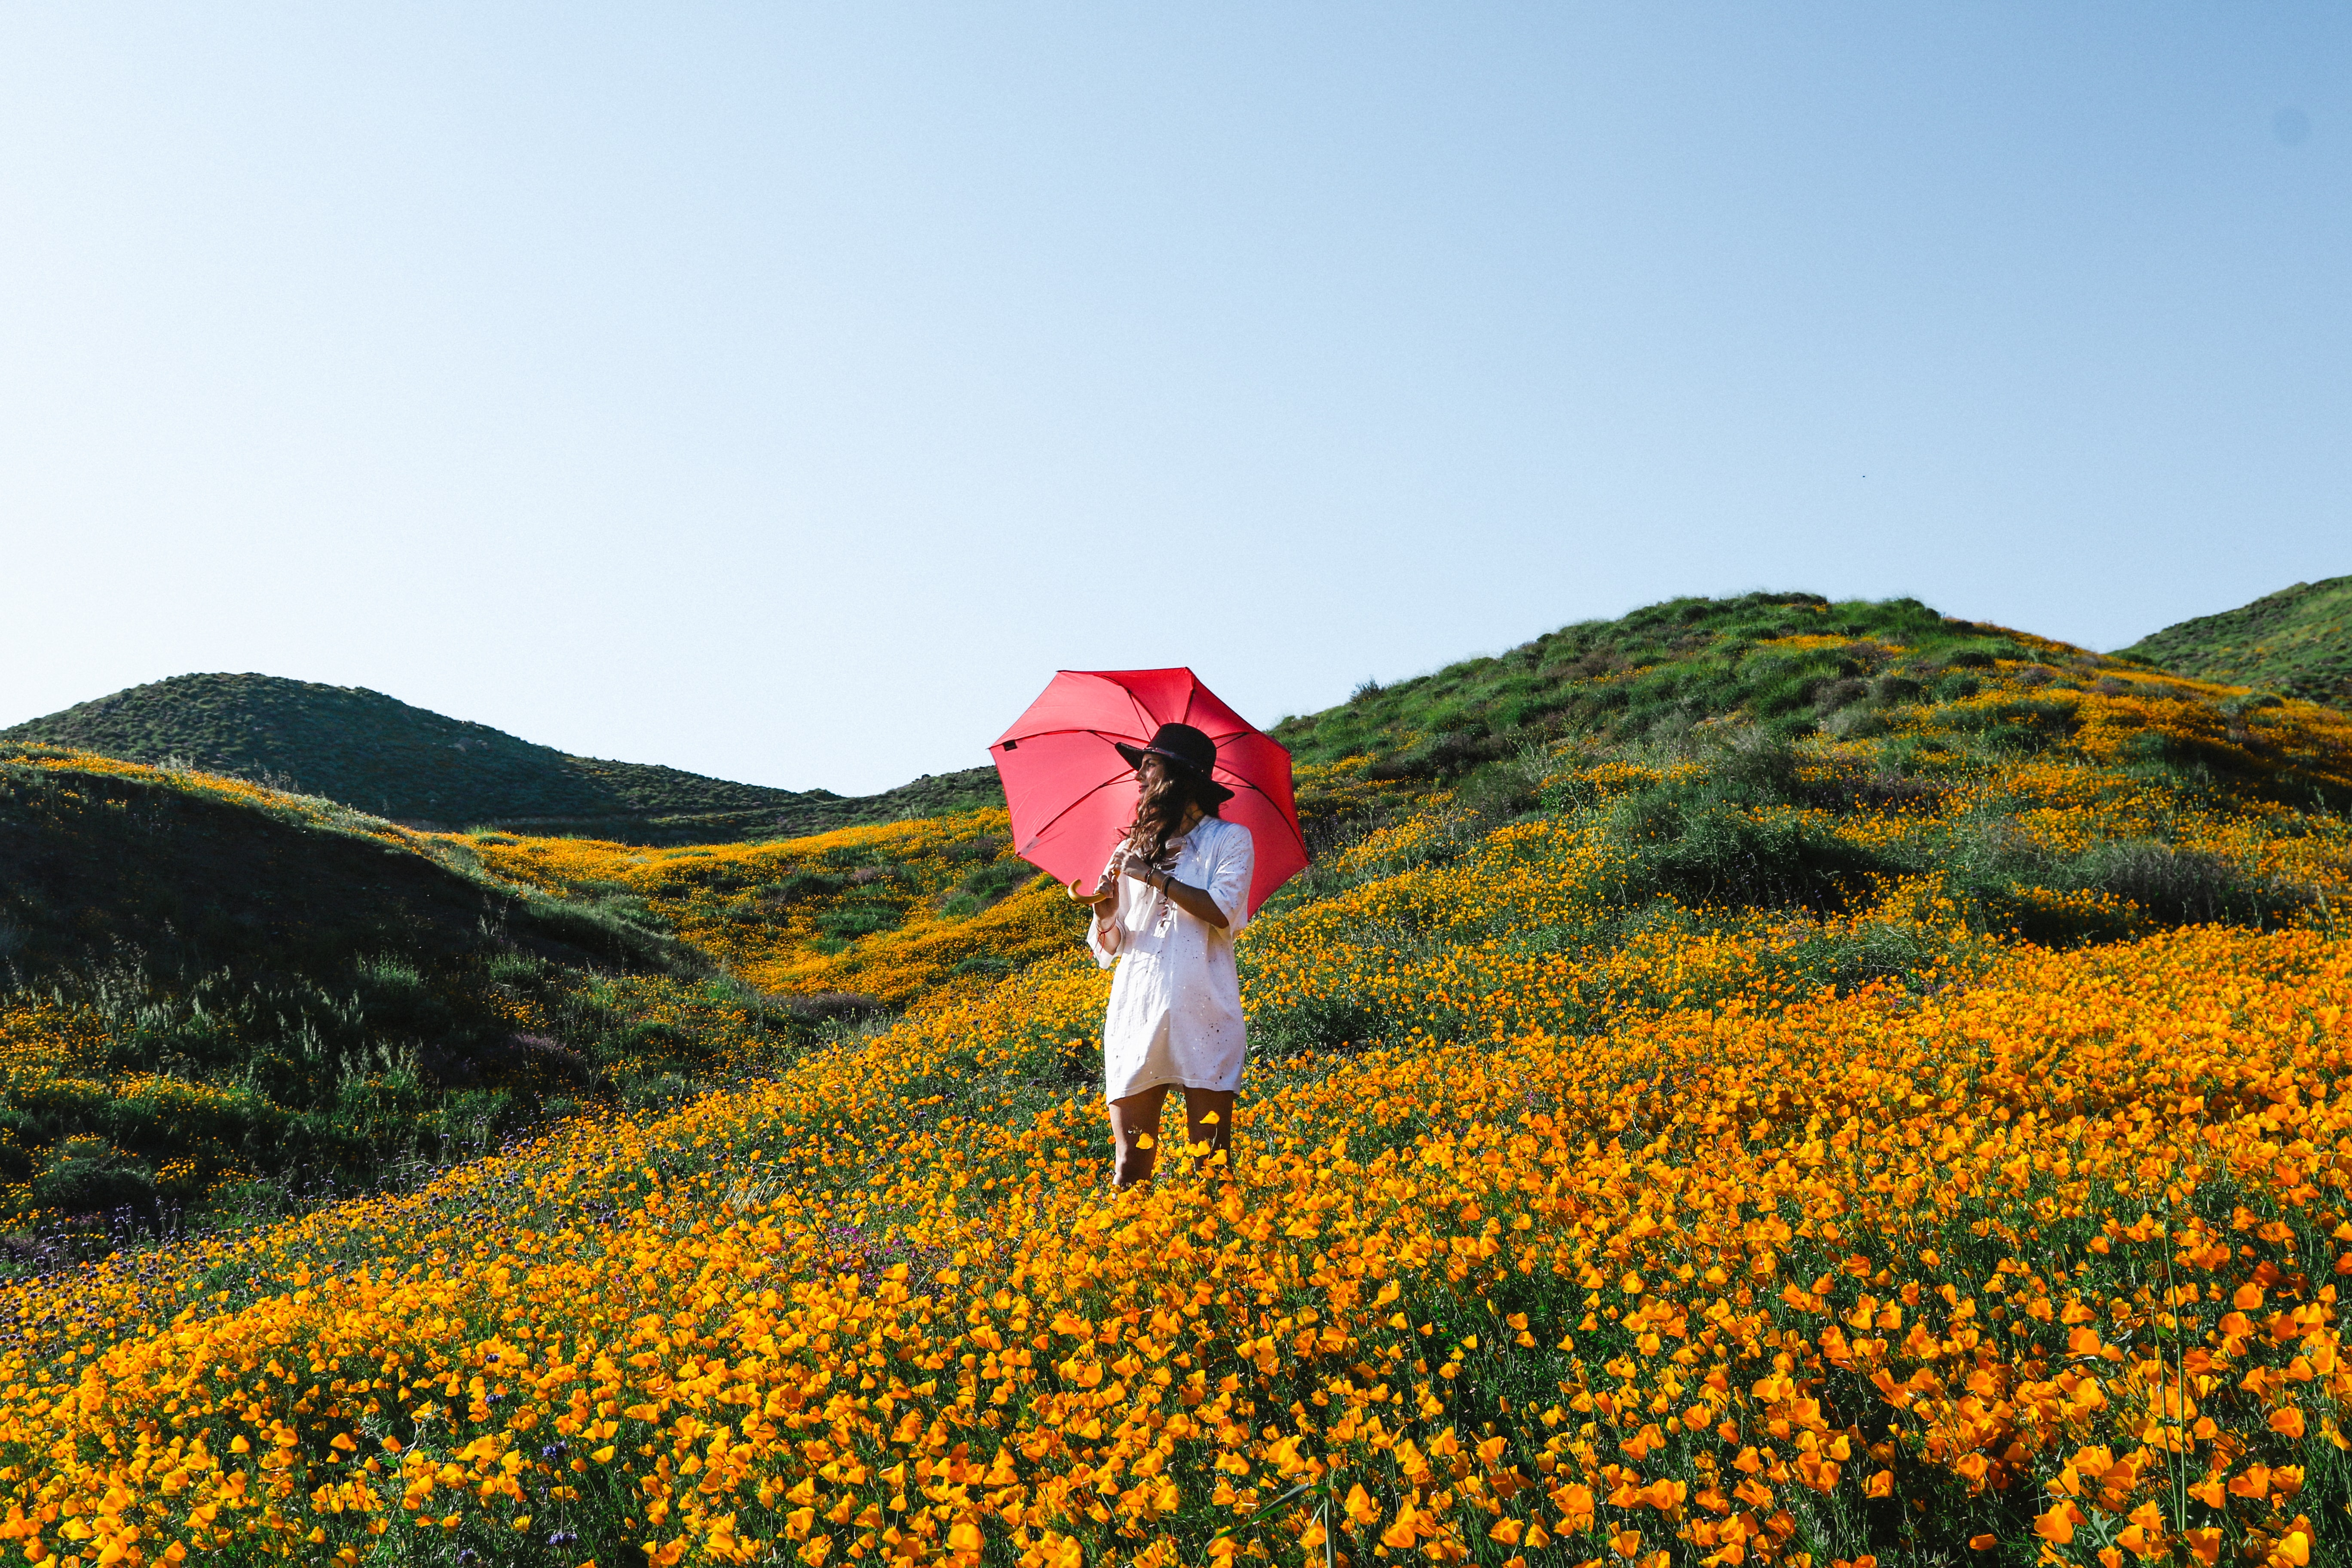 woman walking on orange petaled flower plant field while holding red umbrella